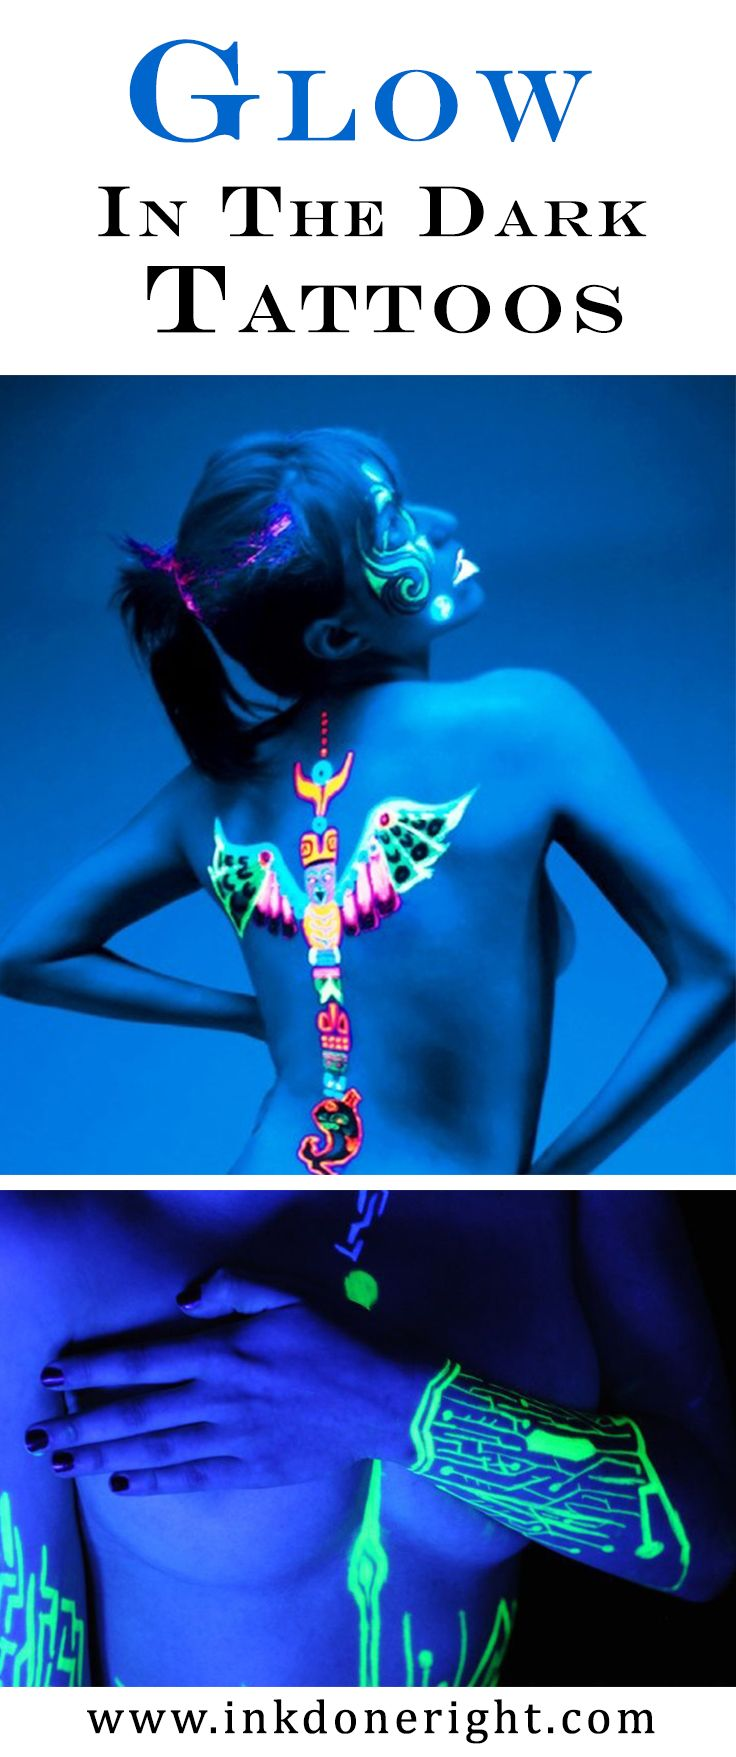 The Glow in the Dark Tattoos Trend  Glow in the dark tattoos are the latest innovation in tattooing technology, with their bright fluorescent colors surprising bedrooms and dance floors across the world. But new innovations come with both risks and rewards, and if you are considering getting a glow in the dark tattoo, there are some facts you need to know about.  #inkdoneright#tattoo#tattoos#inked#art#inkedgirls#tattooed #tattooedgirls